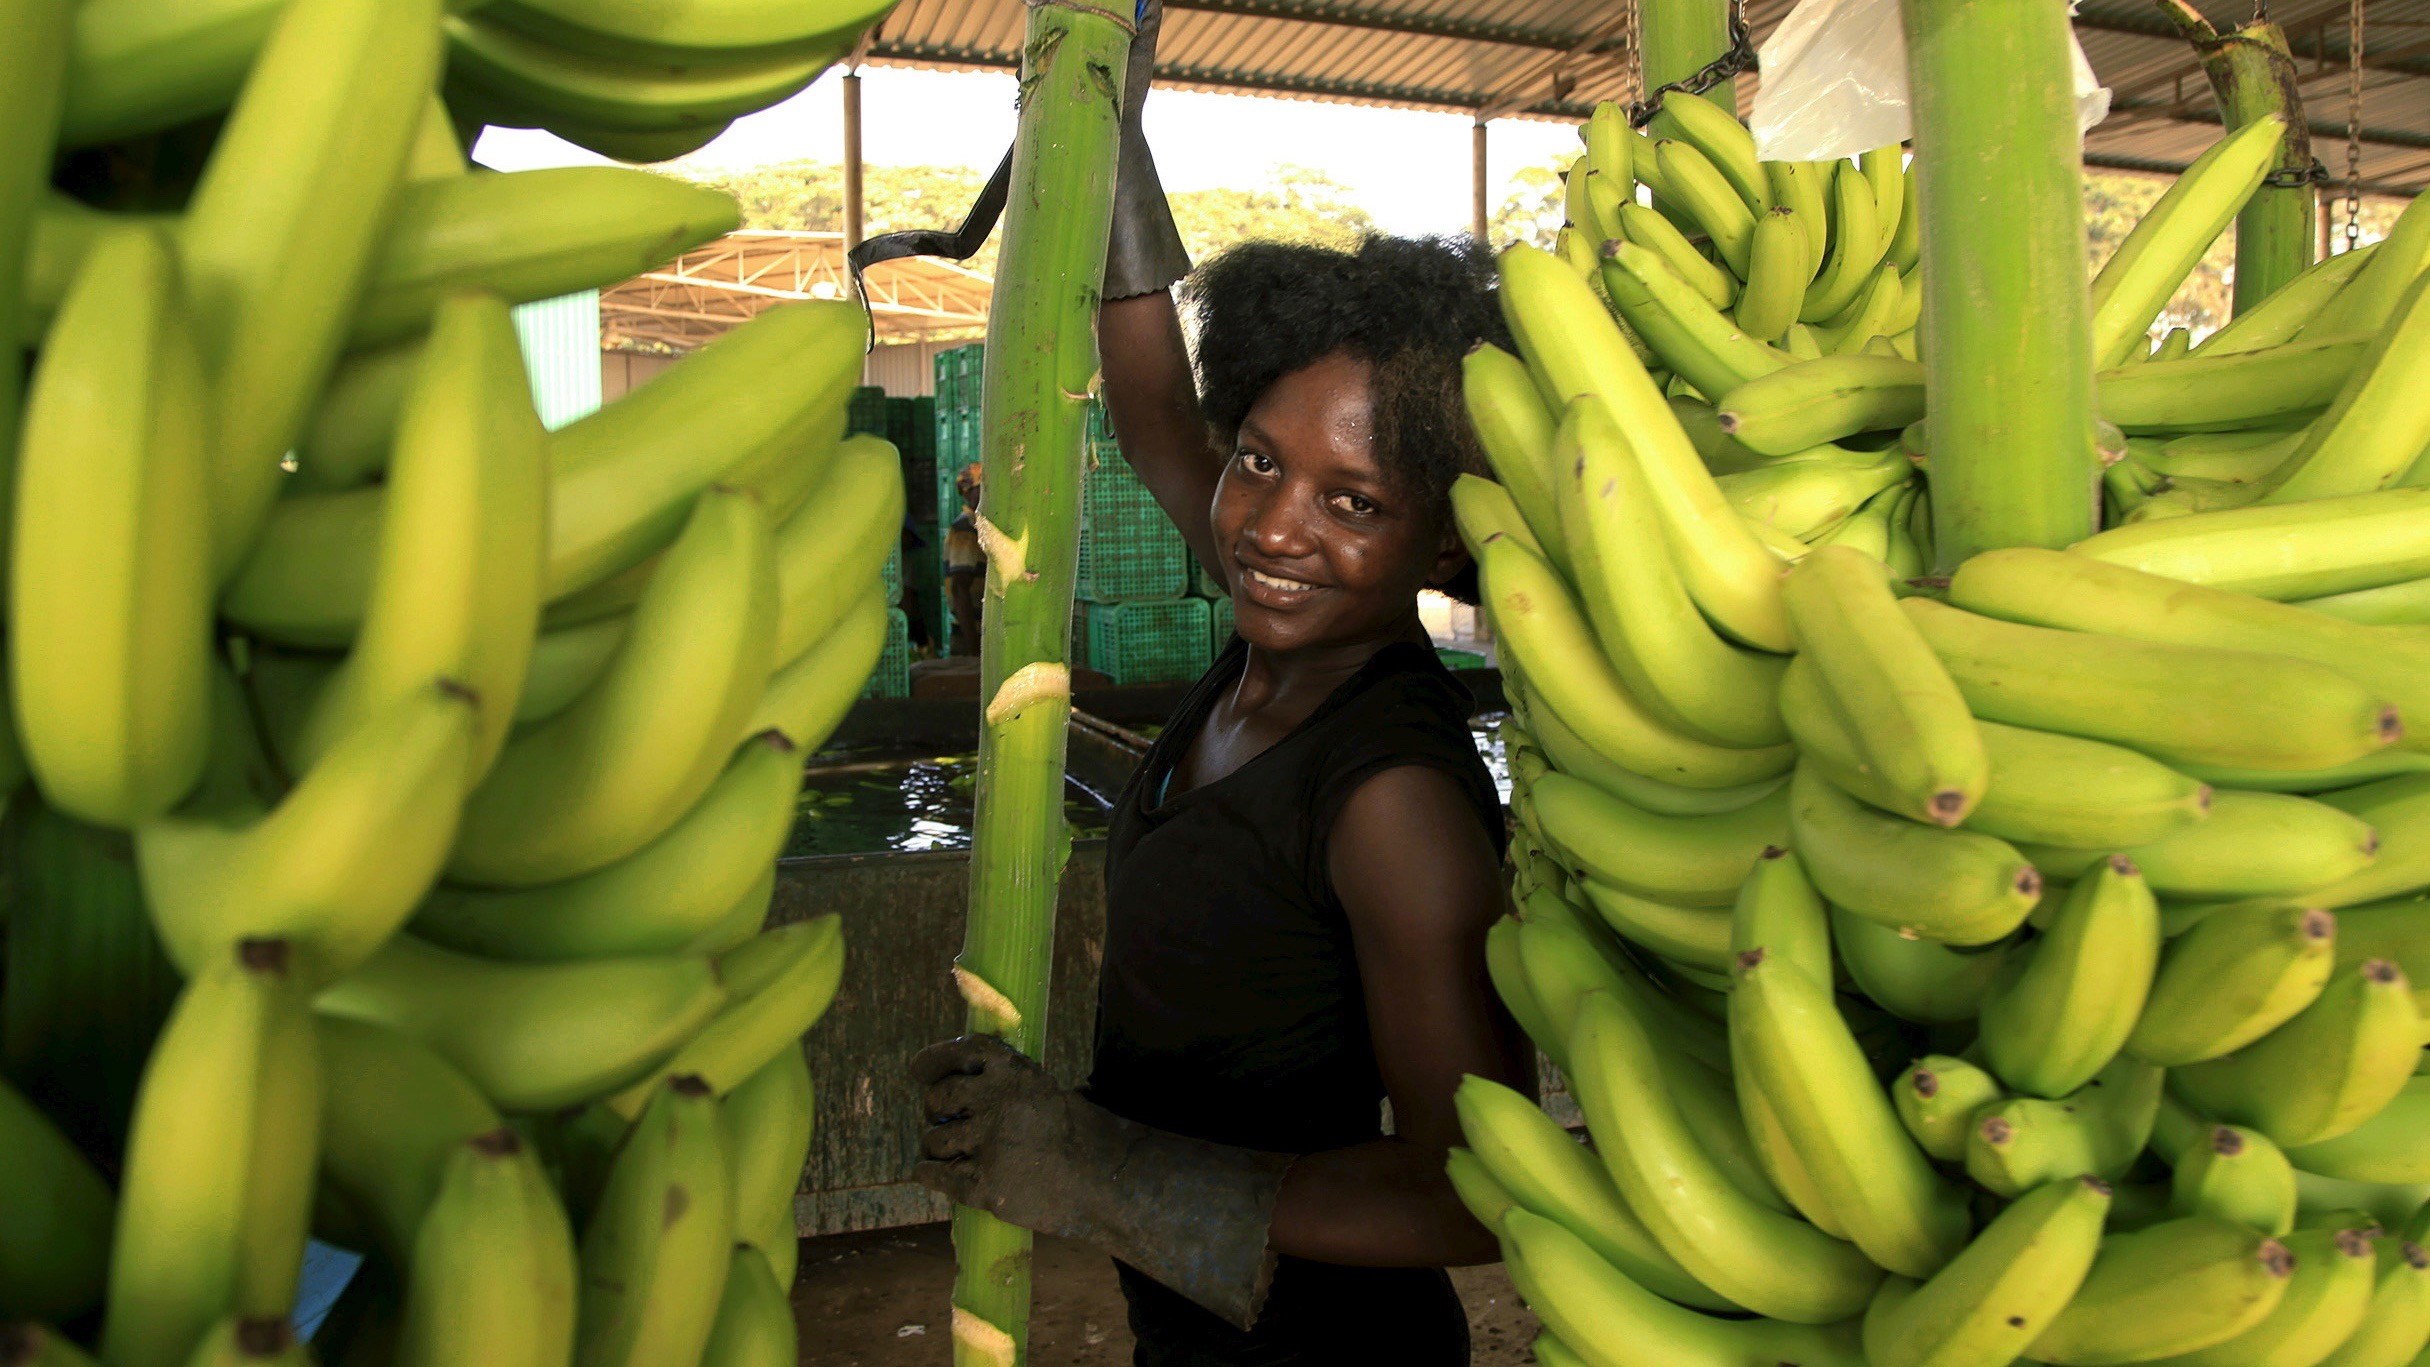 A woman carries bananas at a plantation in Caxito, Angola, May 14, 2015. After decades of civil war destroyed Angola's fertile farmland and a booming oil industry pushed out all other commerce, banana plantations are thriving again in the tropical plains of Caxito, to such an extent that Angola, which imports 90 percent of its food at a cost of $5 billion a year, has finally been able to stop importing bananas. It's a rare case of agricultural progress in a country where only 30 percent of land is cultivated. Picture taken May 14, 2015.